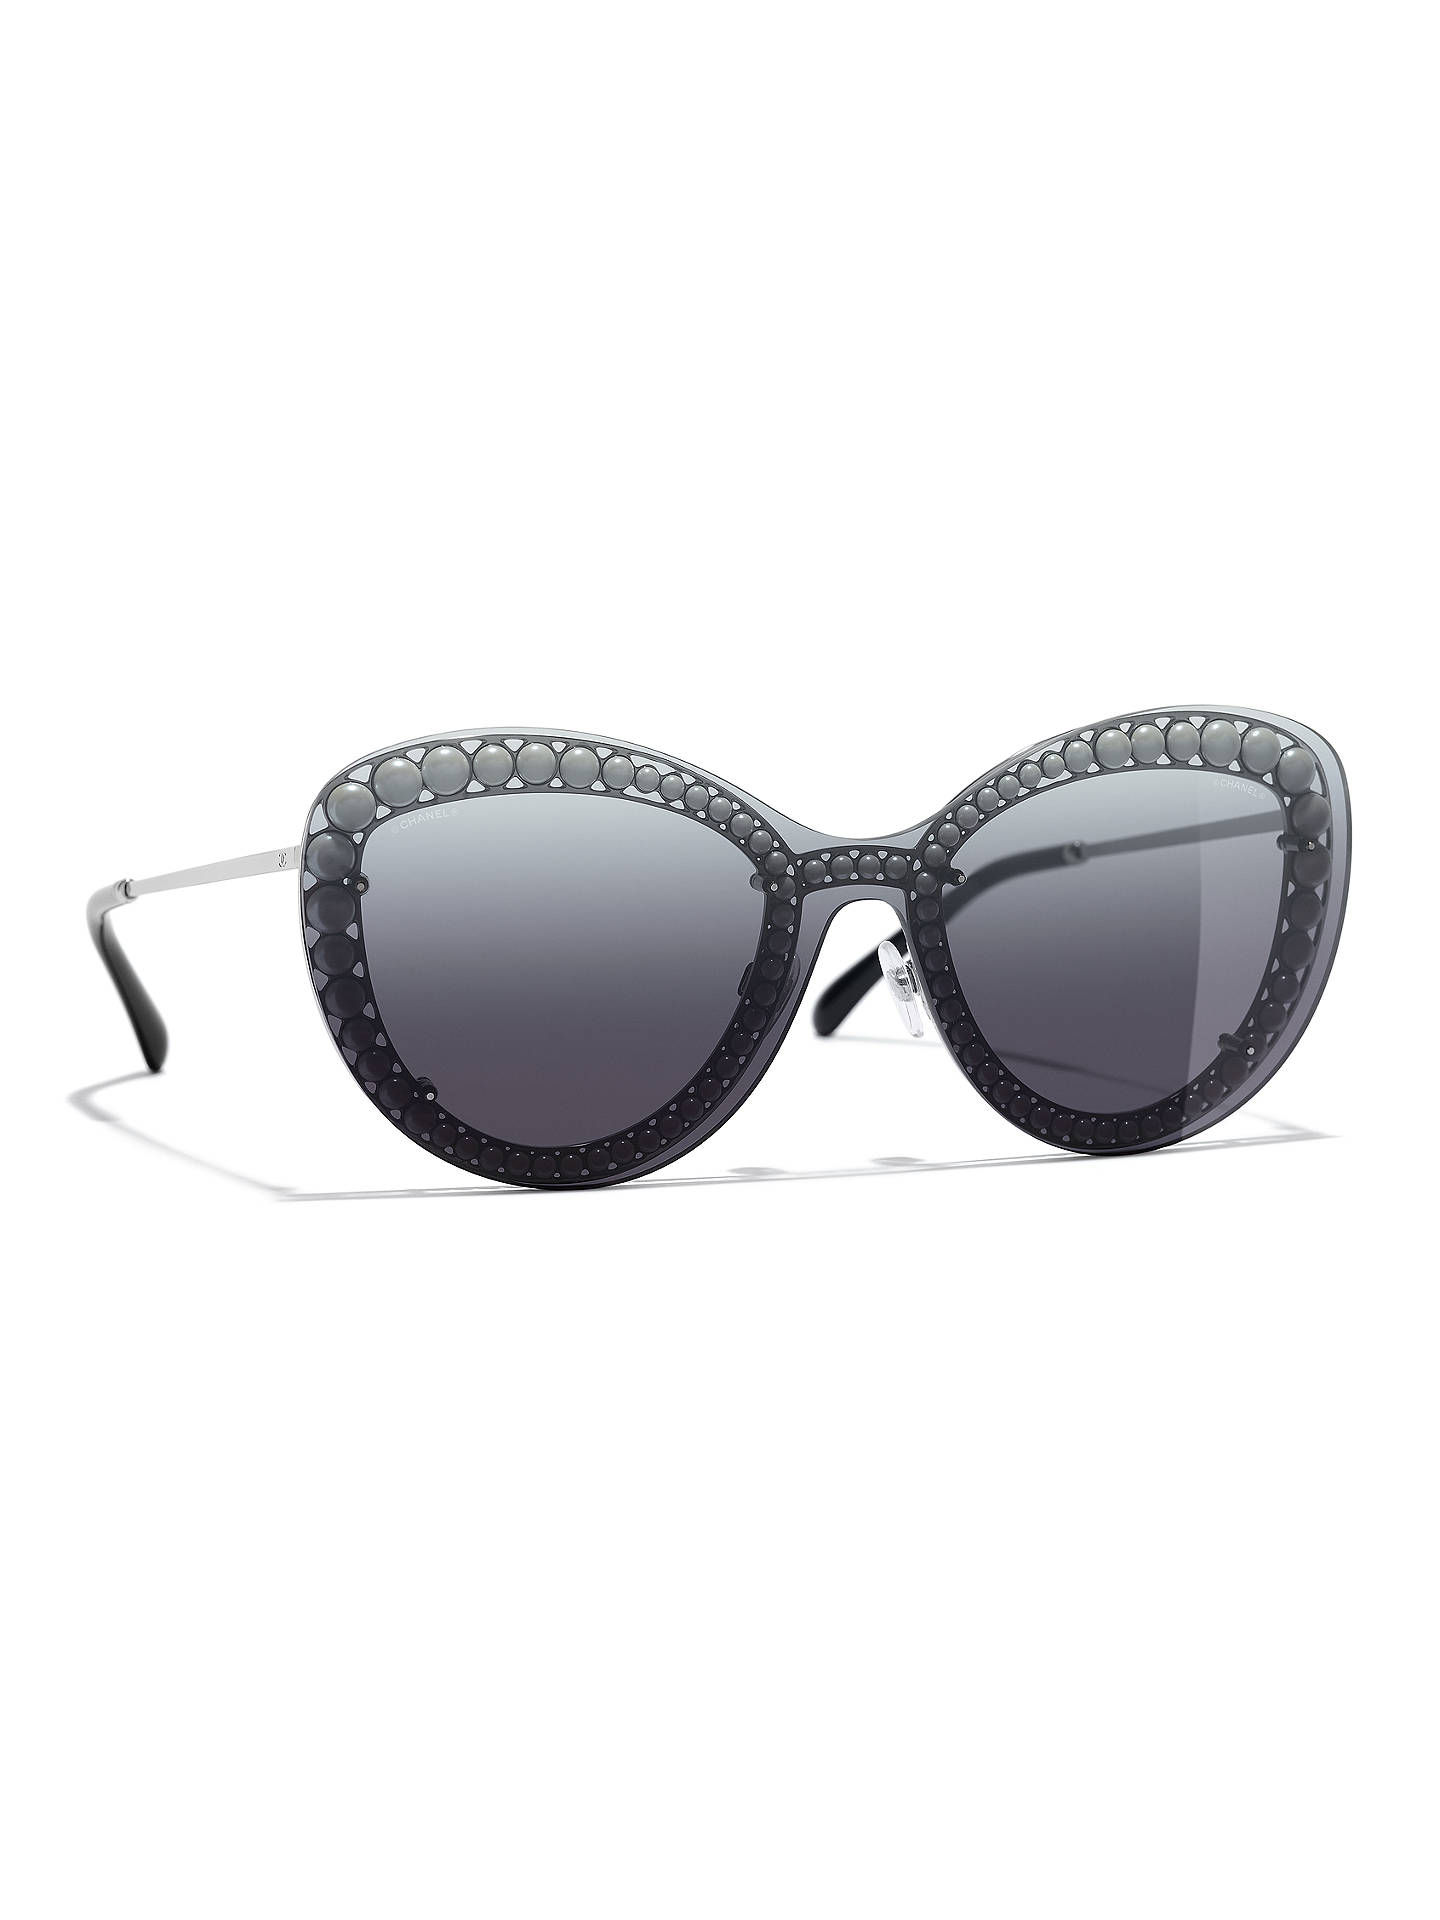 8896fcedfb7 BuyCHANEL Butterfly Sunglasses CH4236 Gunmetal Grey Gradient Online at  johnlewis.com ...